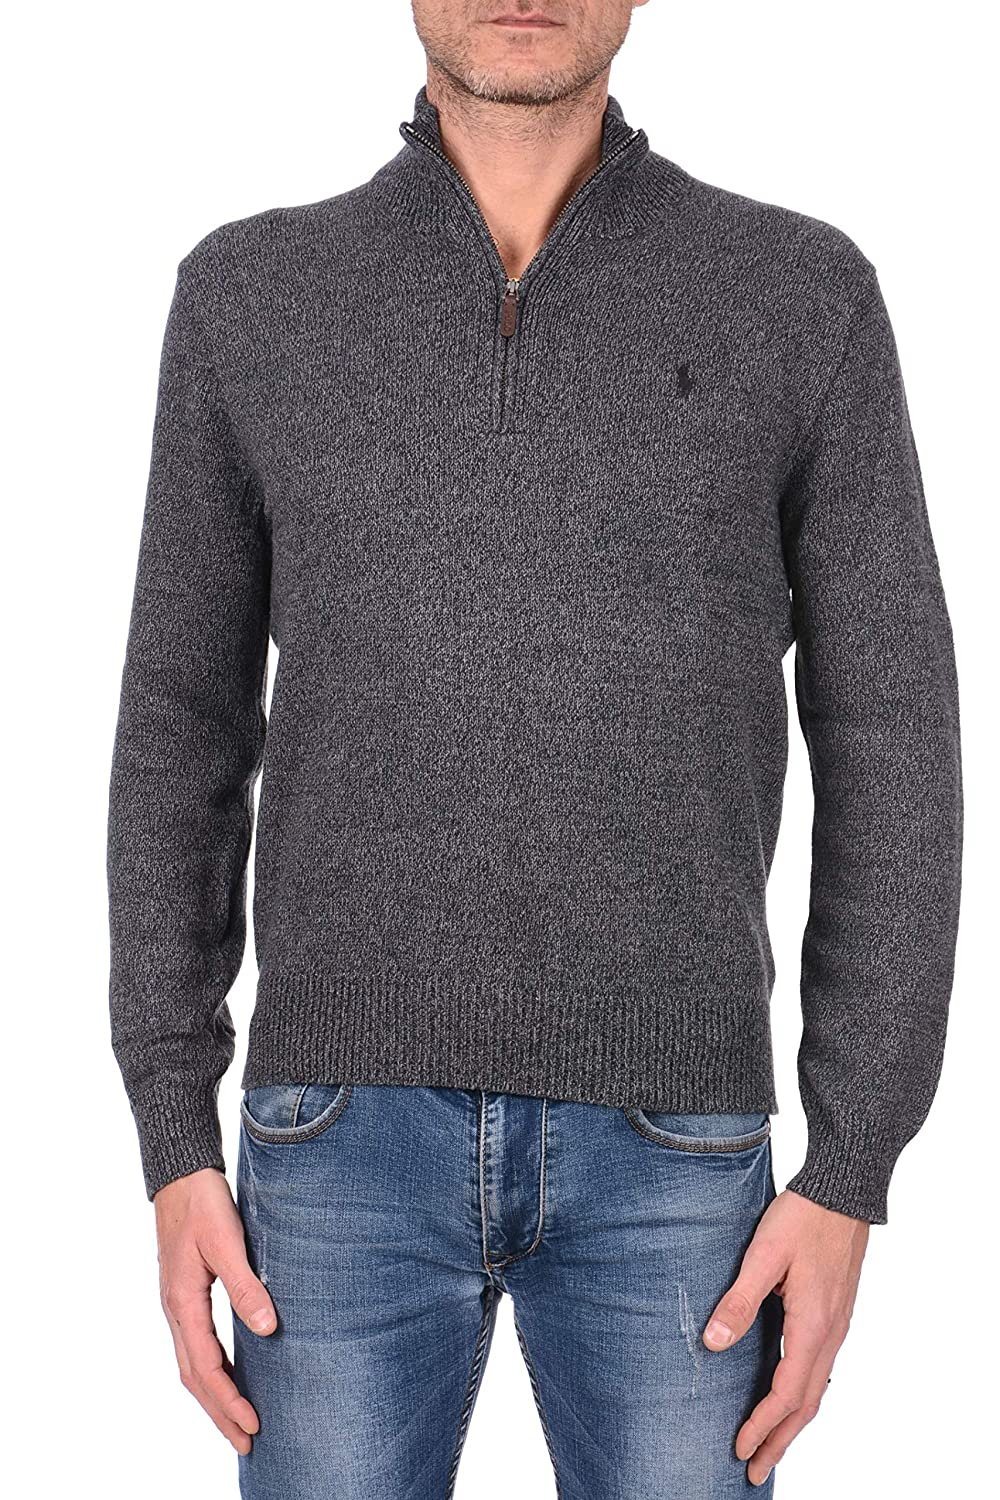 Polo Ralph Lauren Mens Half-Zip Mockneck Sweater, L, Charcoal